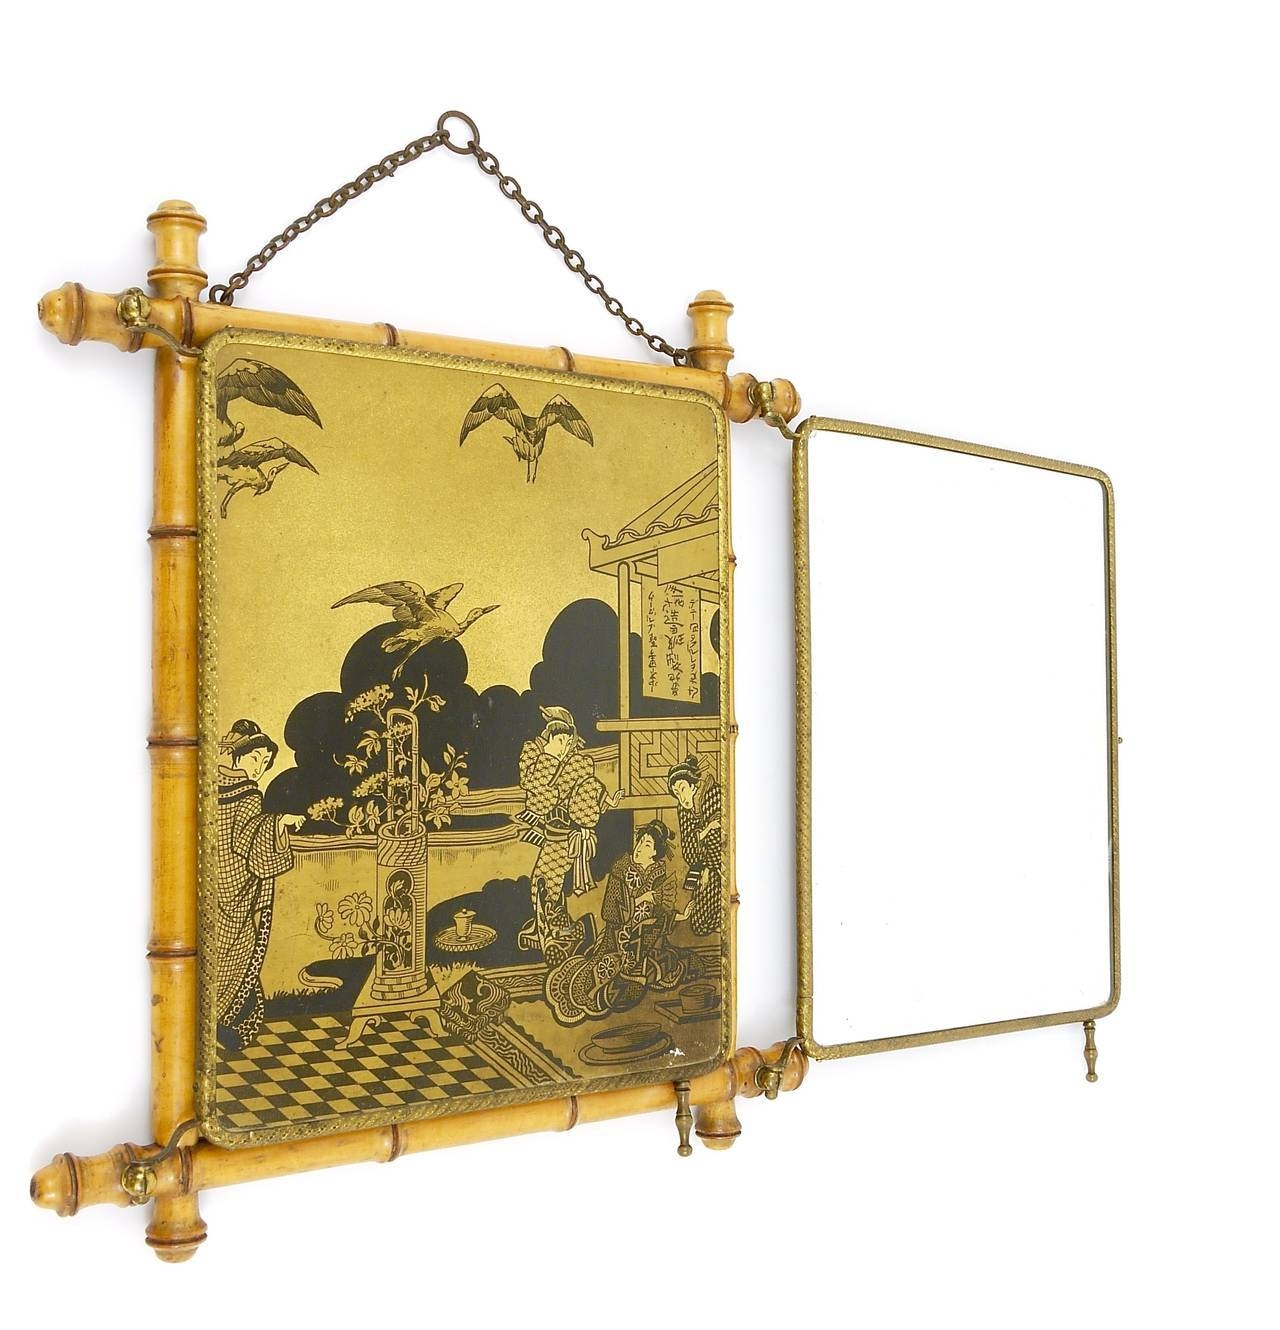 French Faux Bamboo And Brass Triple Vanity Table Mirror Or Wall regarding Triple Oval Mirrors (Image 9 of 25)